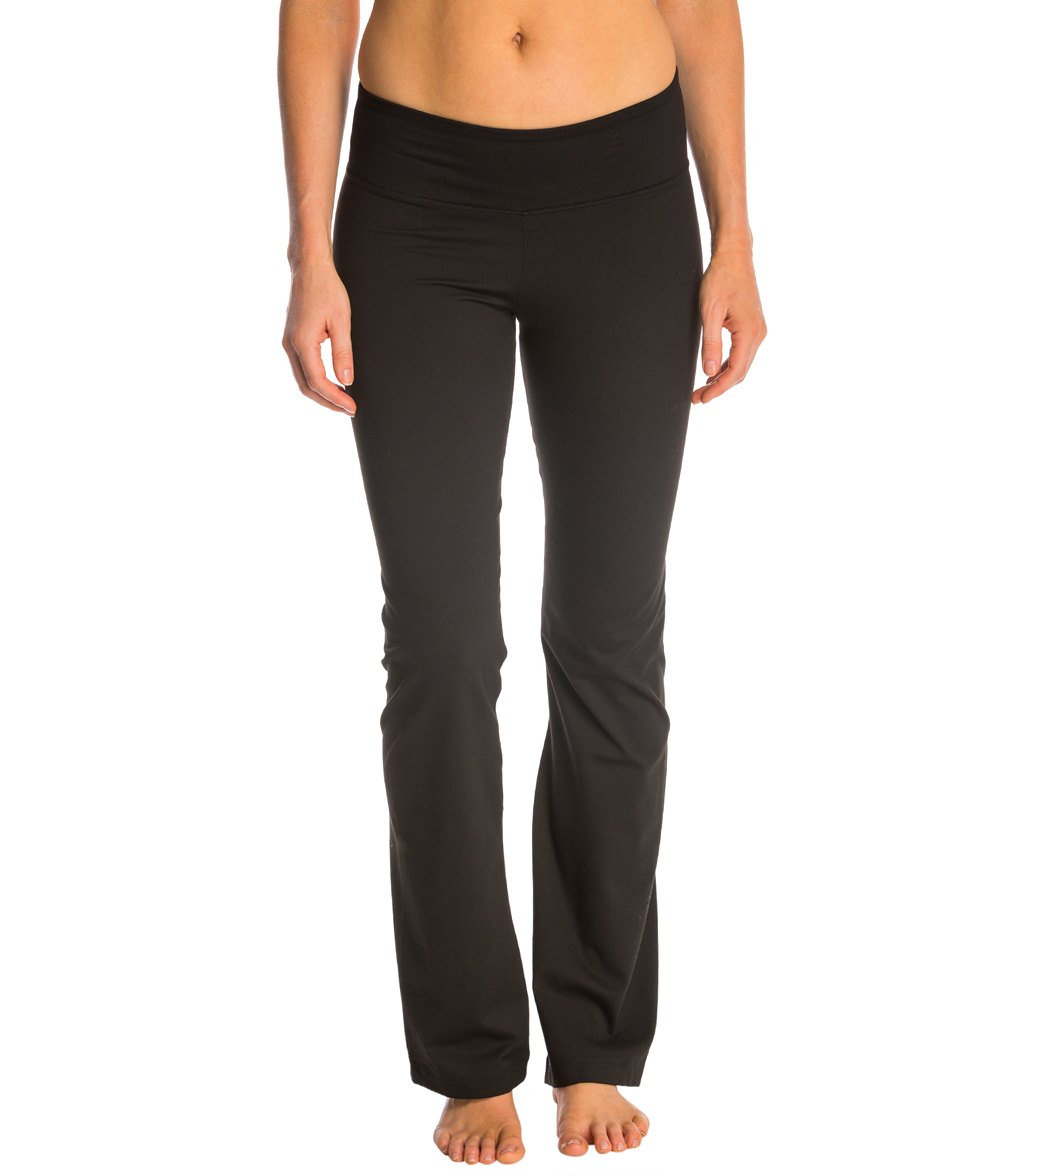 Marika Balance Collection Flat Waist Yoga Pants at YogaOutlet.com